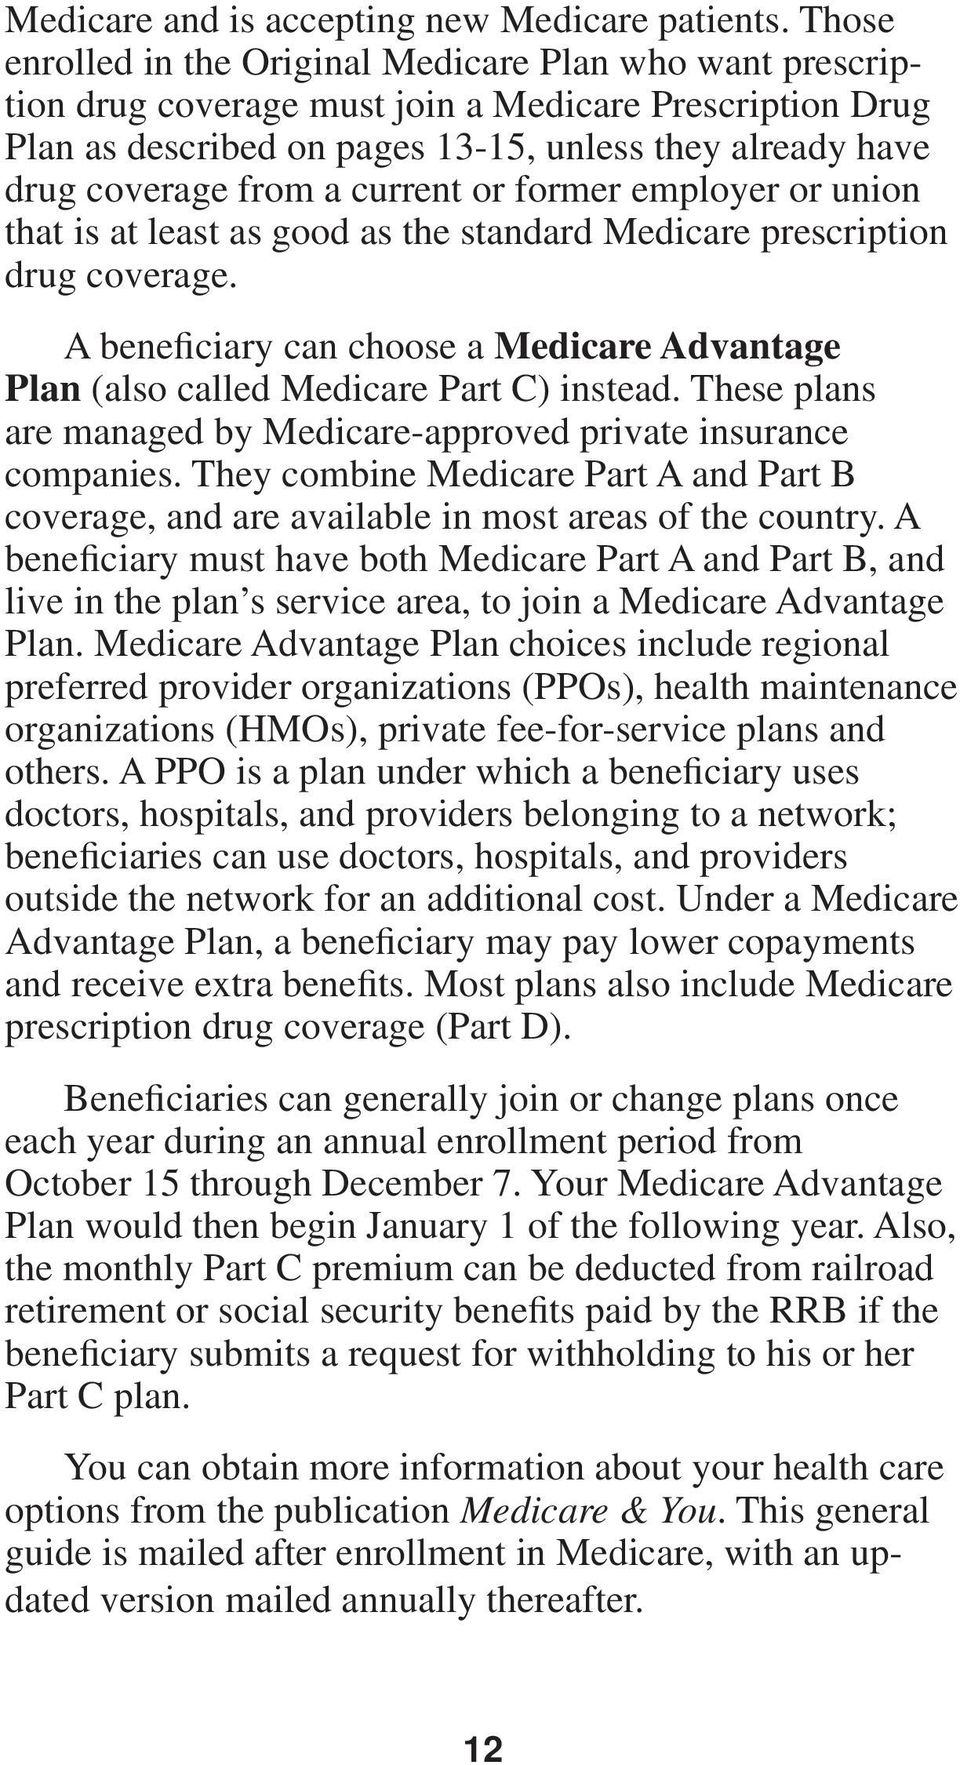 current or former employer or union that is at least as good as the standard Medicare prescription drug coverage.